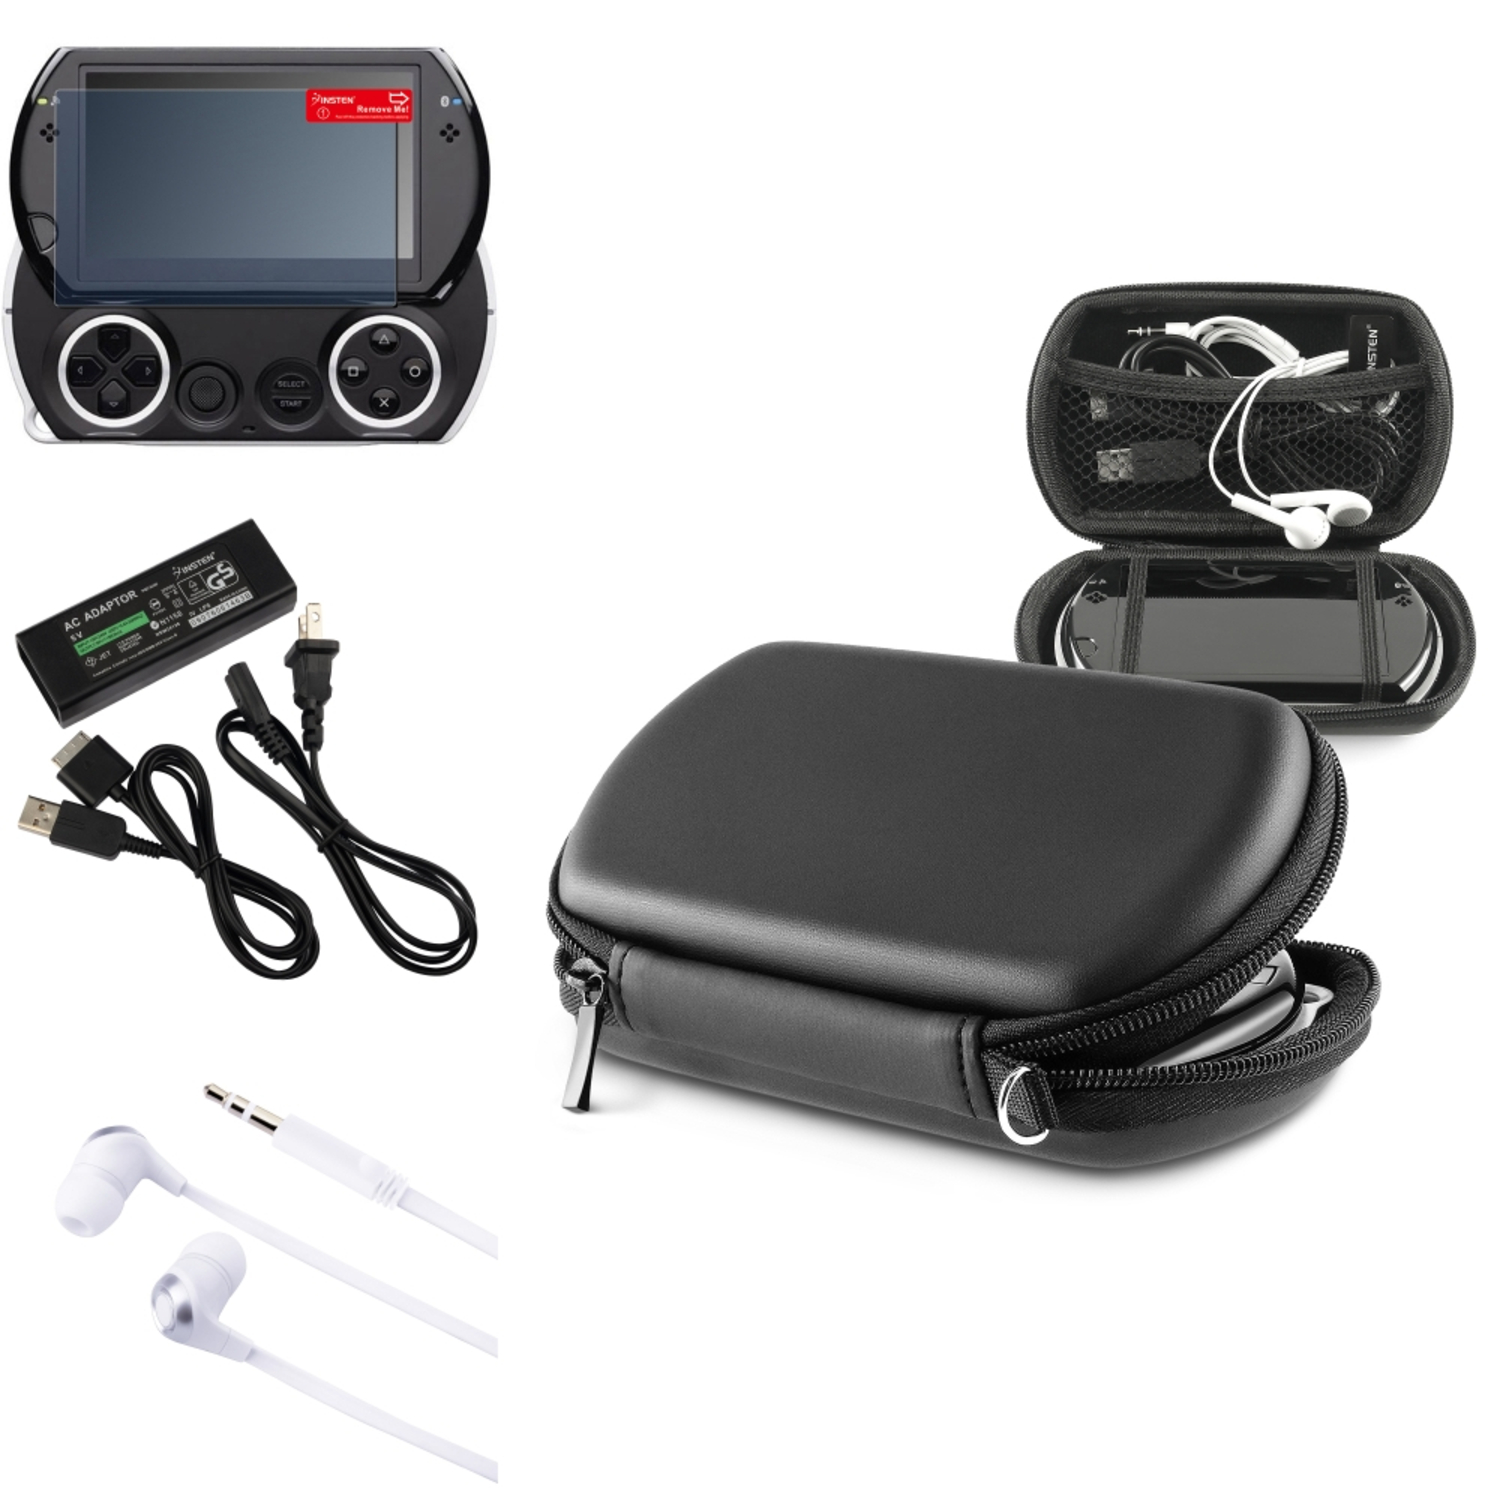 Insten For PSP Go - Travel AC Charger + Black EVA Case Cover + Screen Protector + 3.5mm Headset